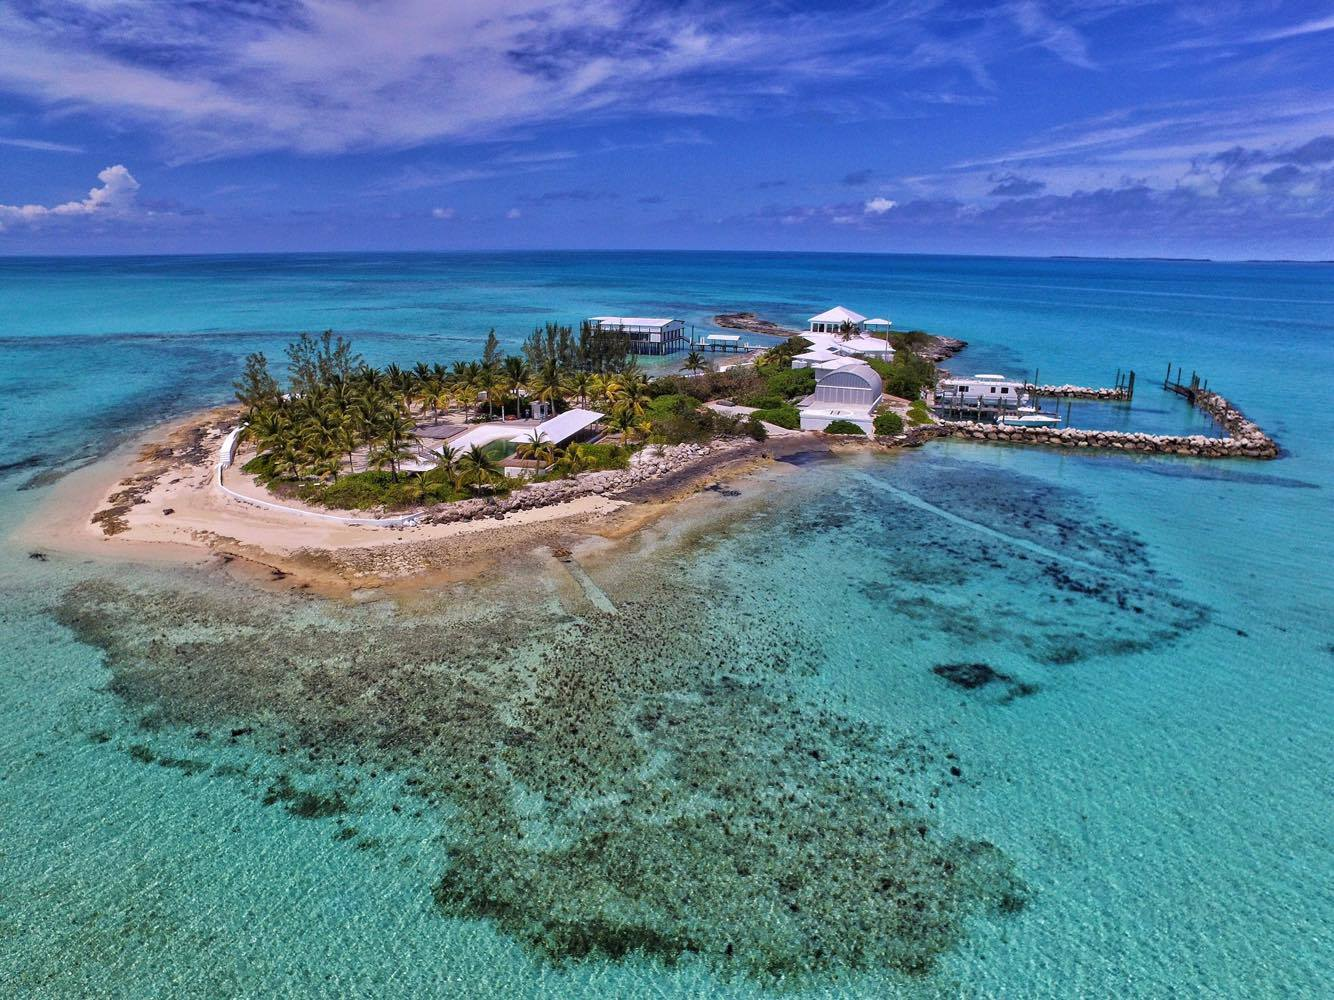 Частный остров для того Продажа на Private Island North Eleuthera - Exclusive - Unique - Exciting Commercial Possibilities! Eleuthera, Багамские Острова